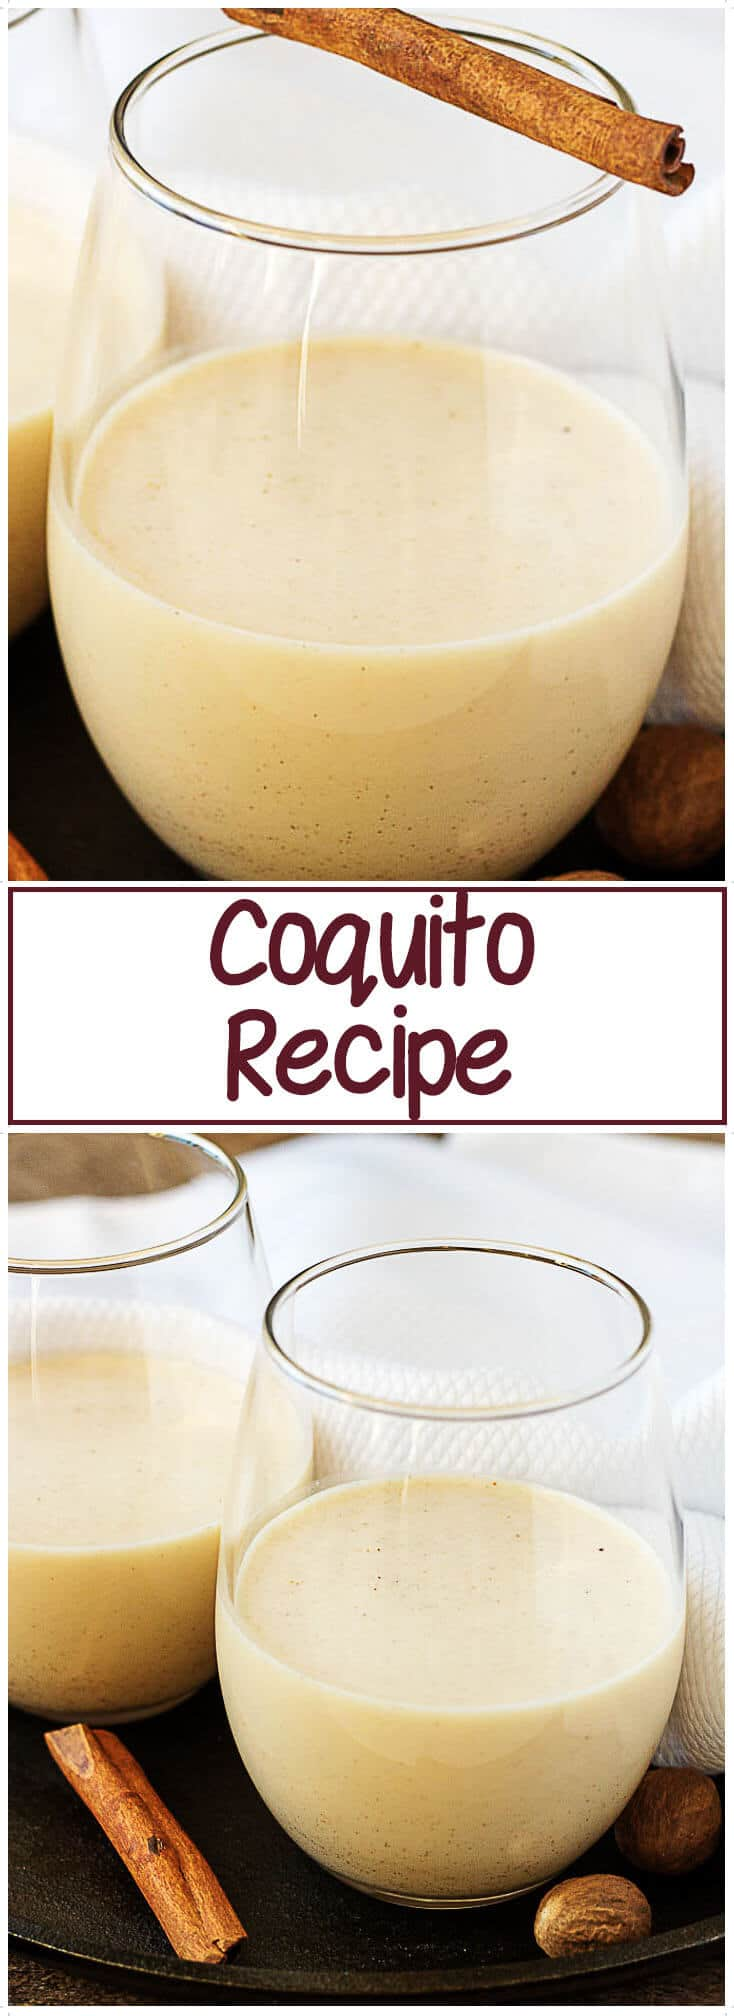 A simple Coquito recipe that's festive and perfect for lifting your holiday spirits. A rich and creamy coconut eggnog spiked with white rum. #coquito #eggnog  #alcohol #Christmas